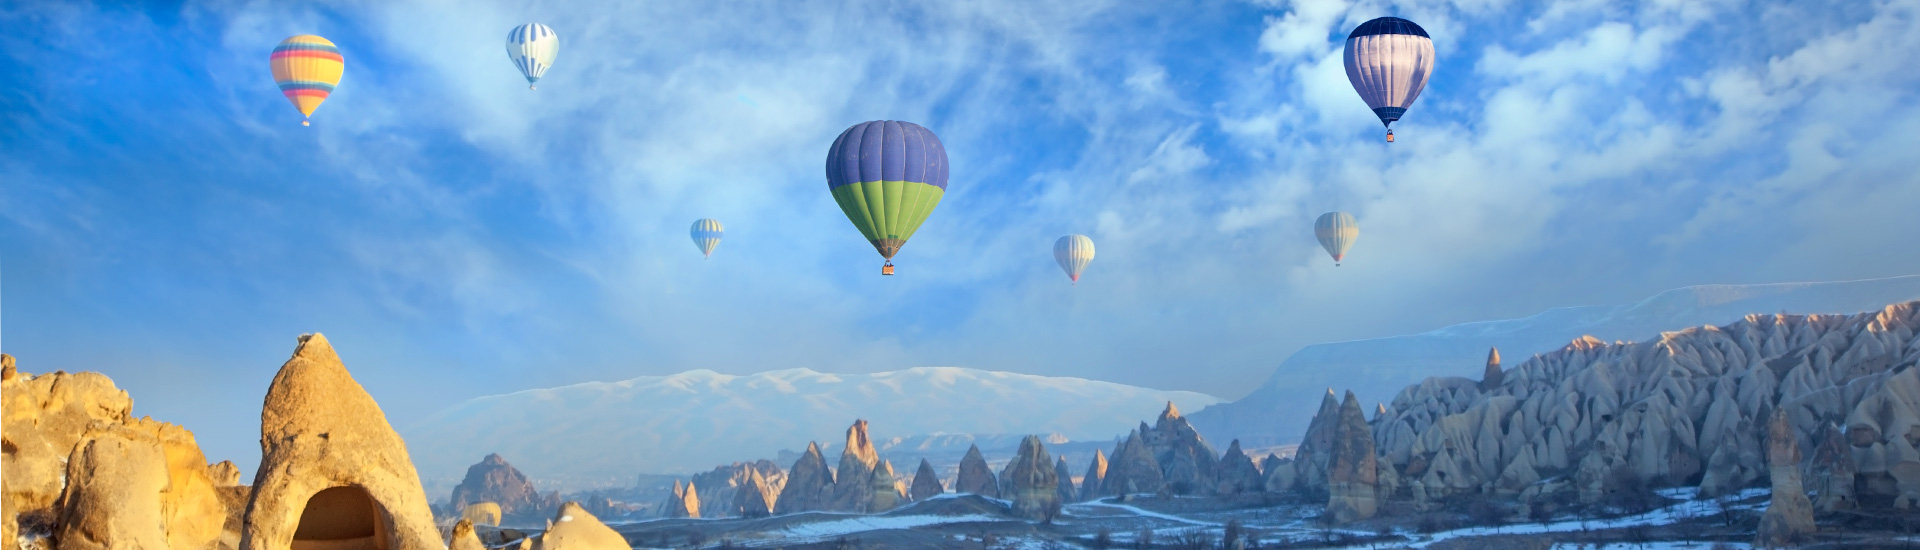 Take a hot air balloon ride across Turkey